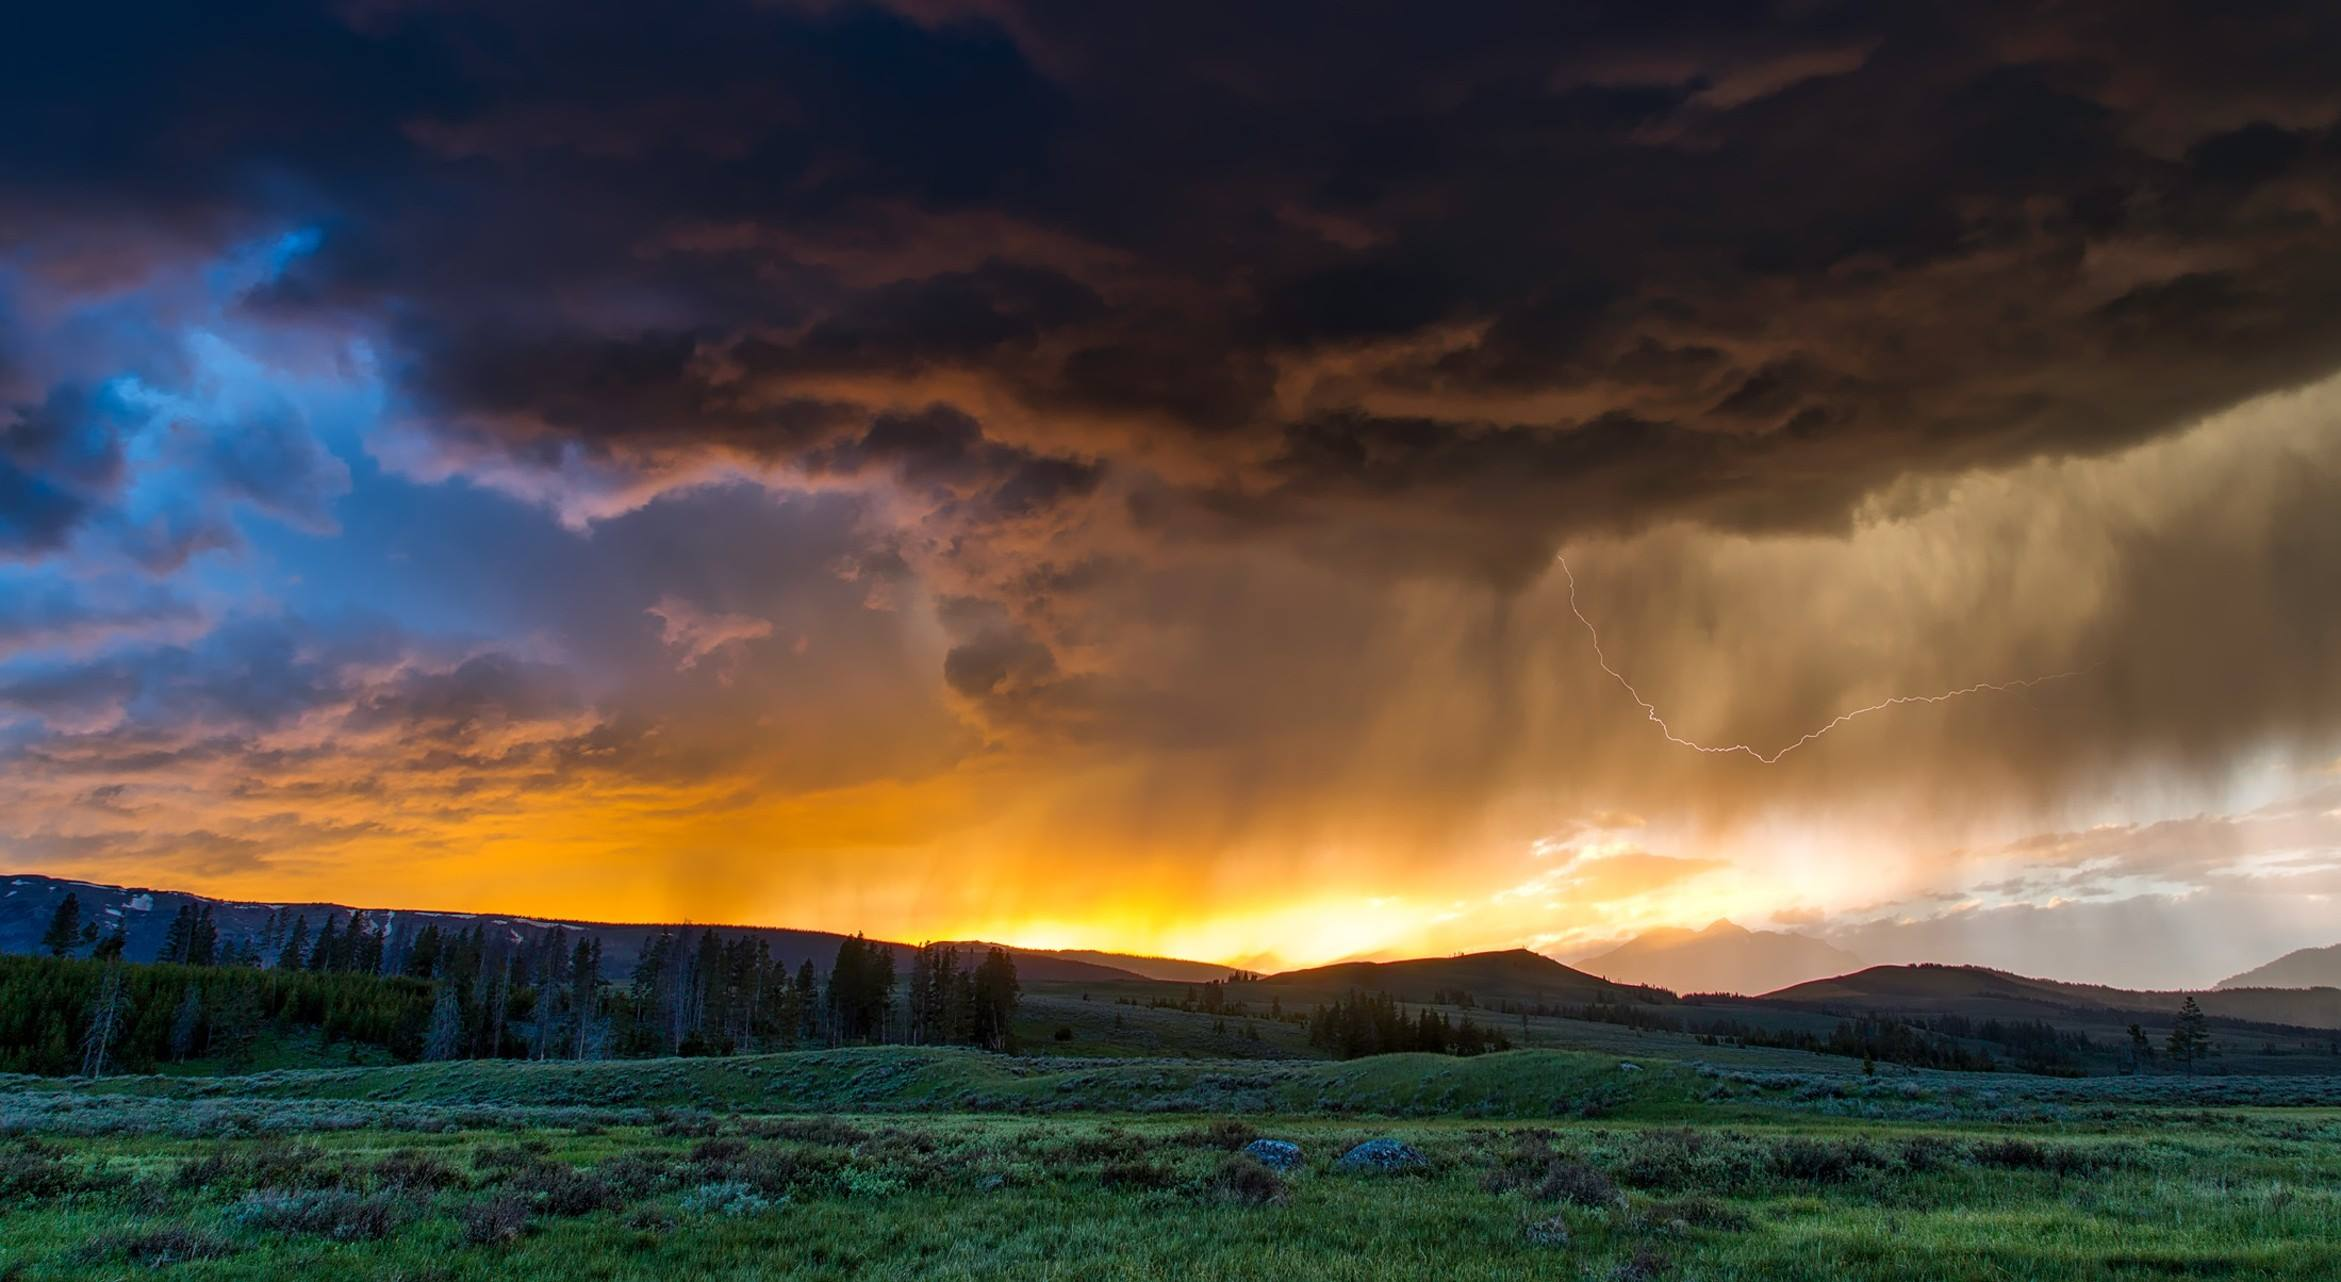 yellowstone national park storm landscape mountains